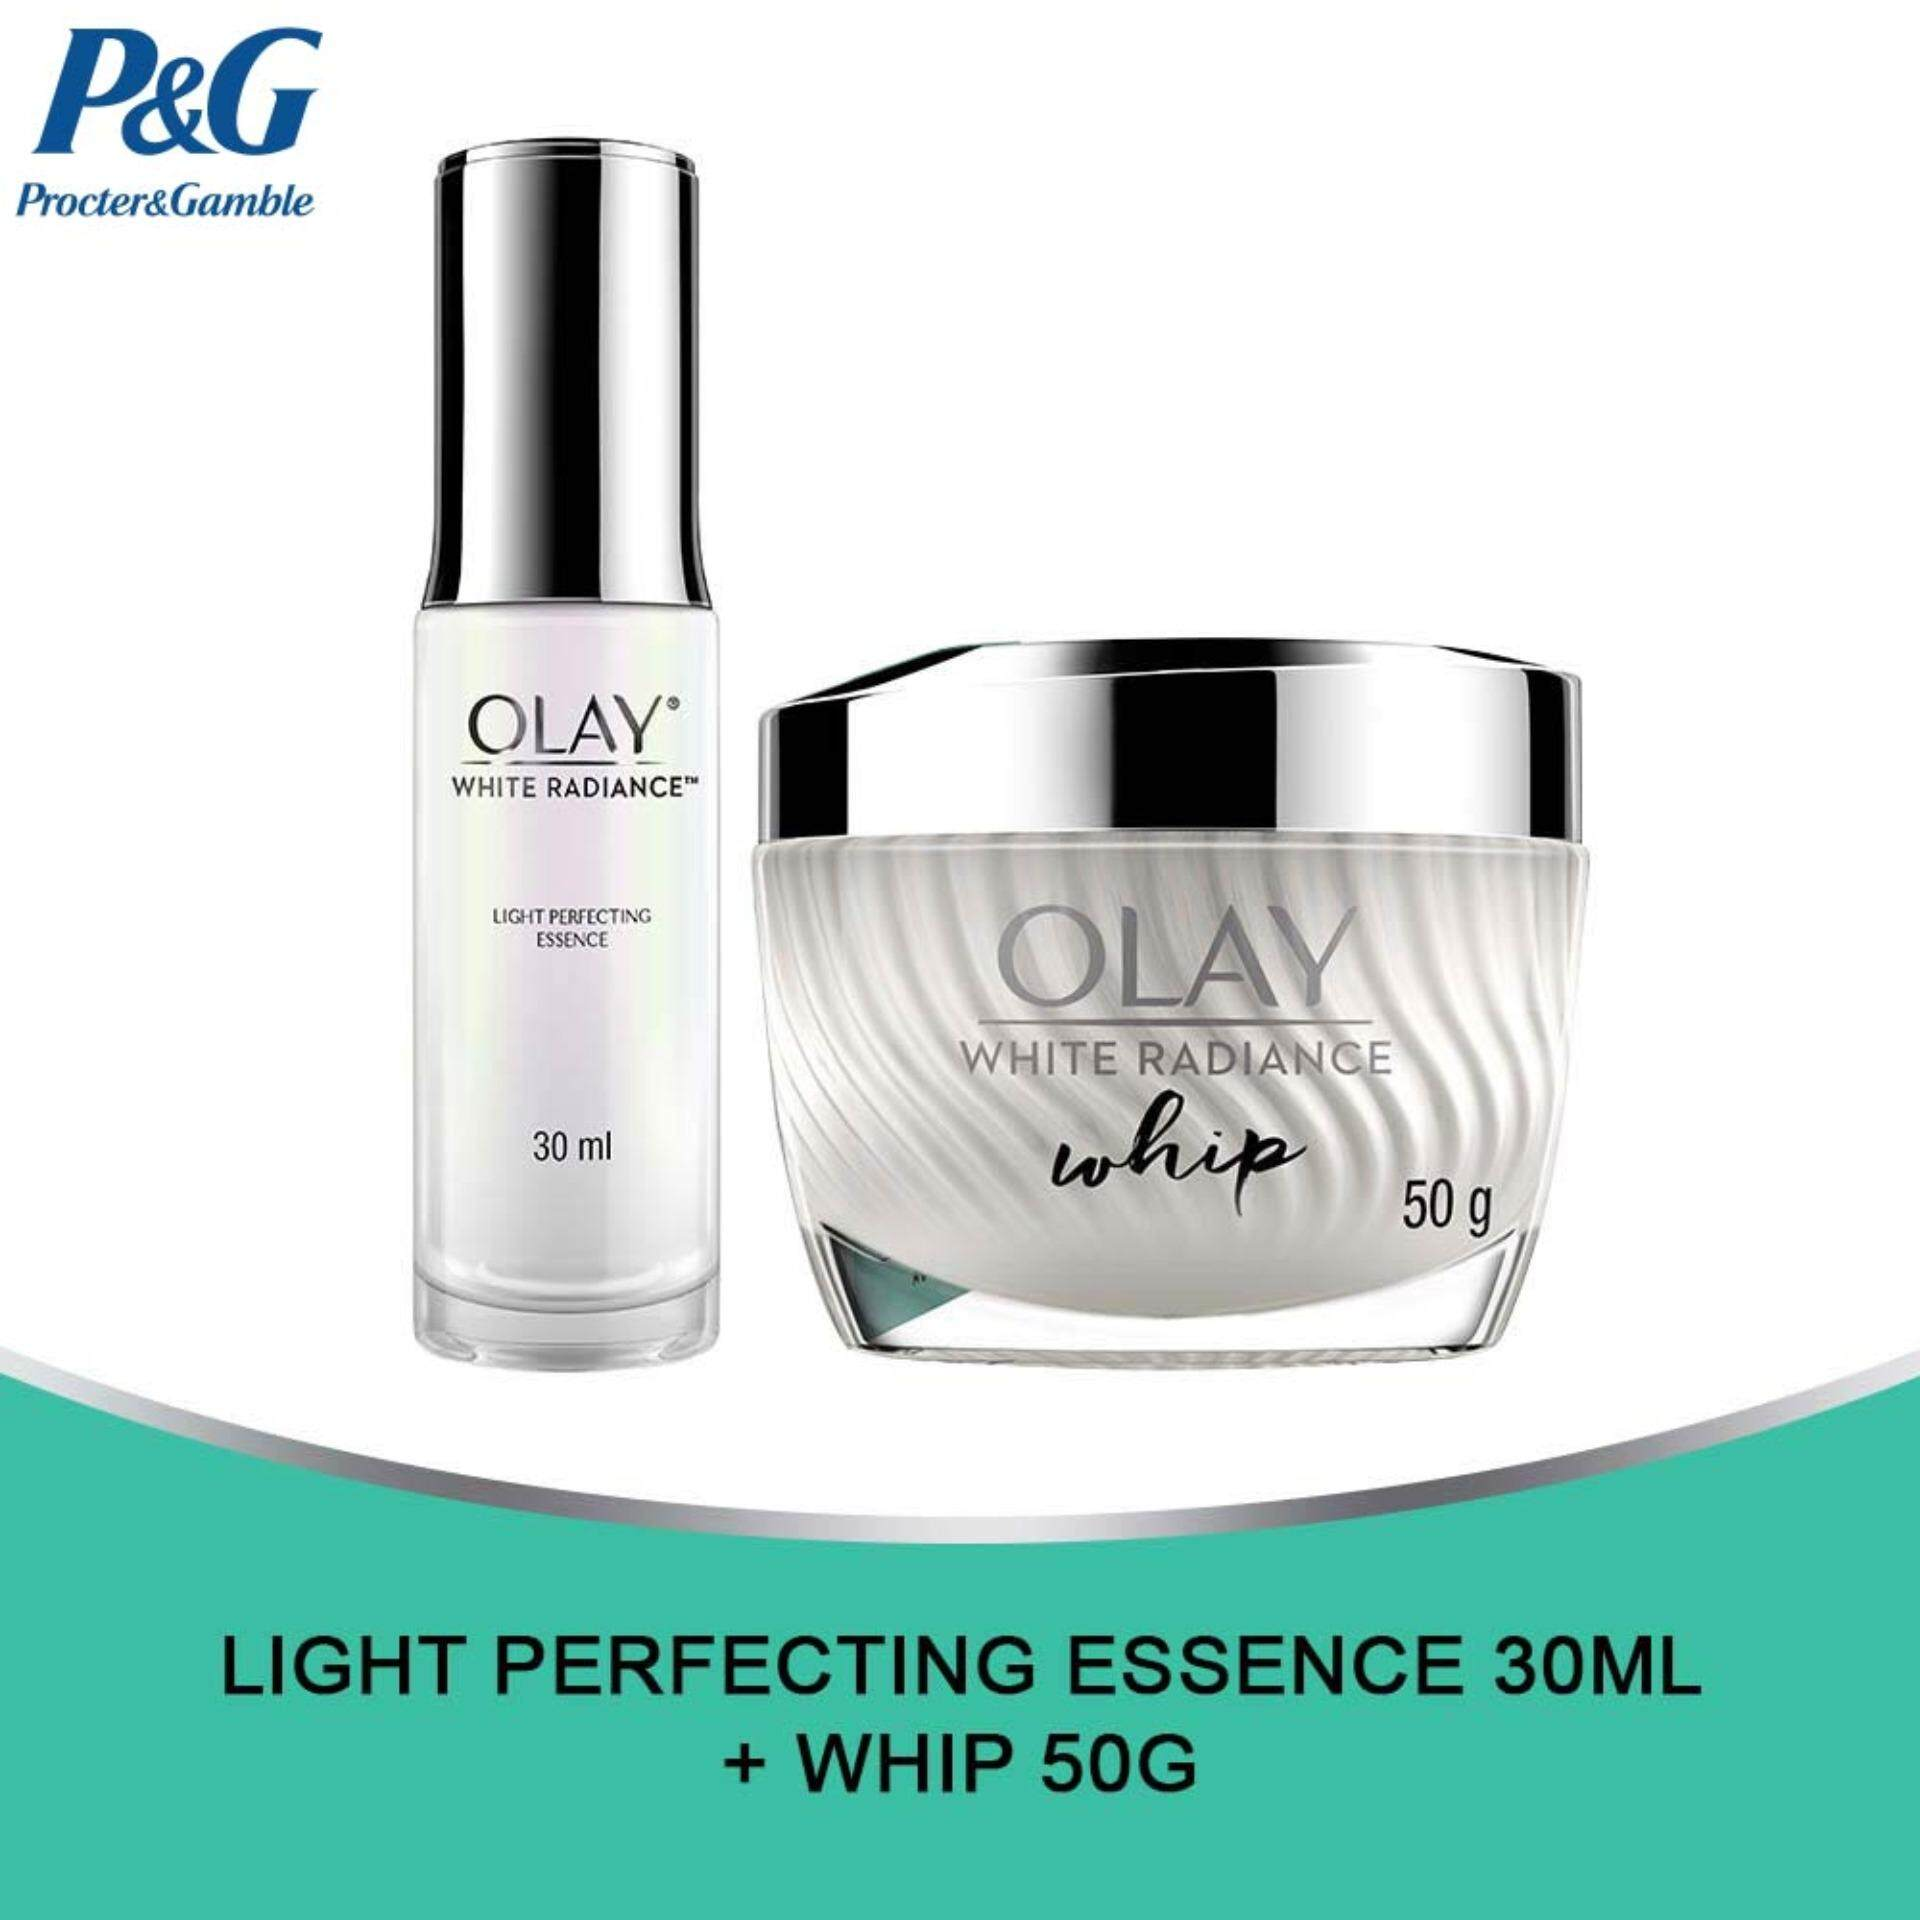 Olay White Radiance Light Perfecting Essence 30ml and Whip 50g Set